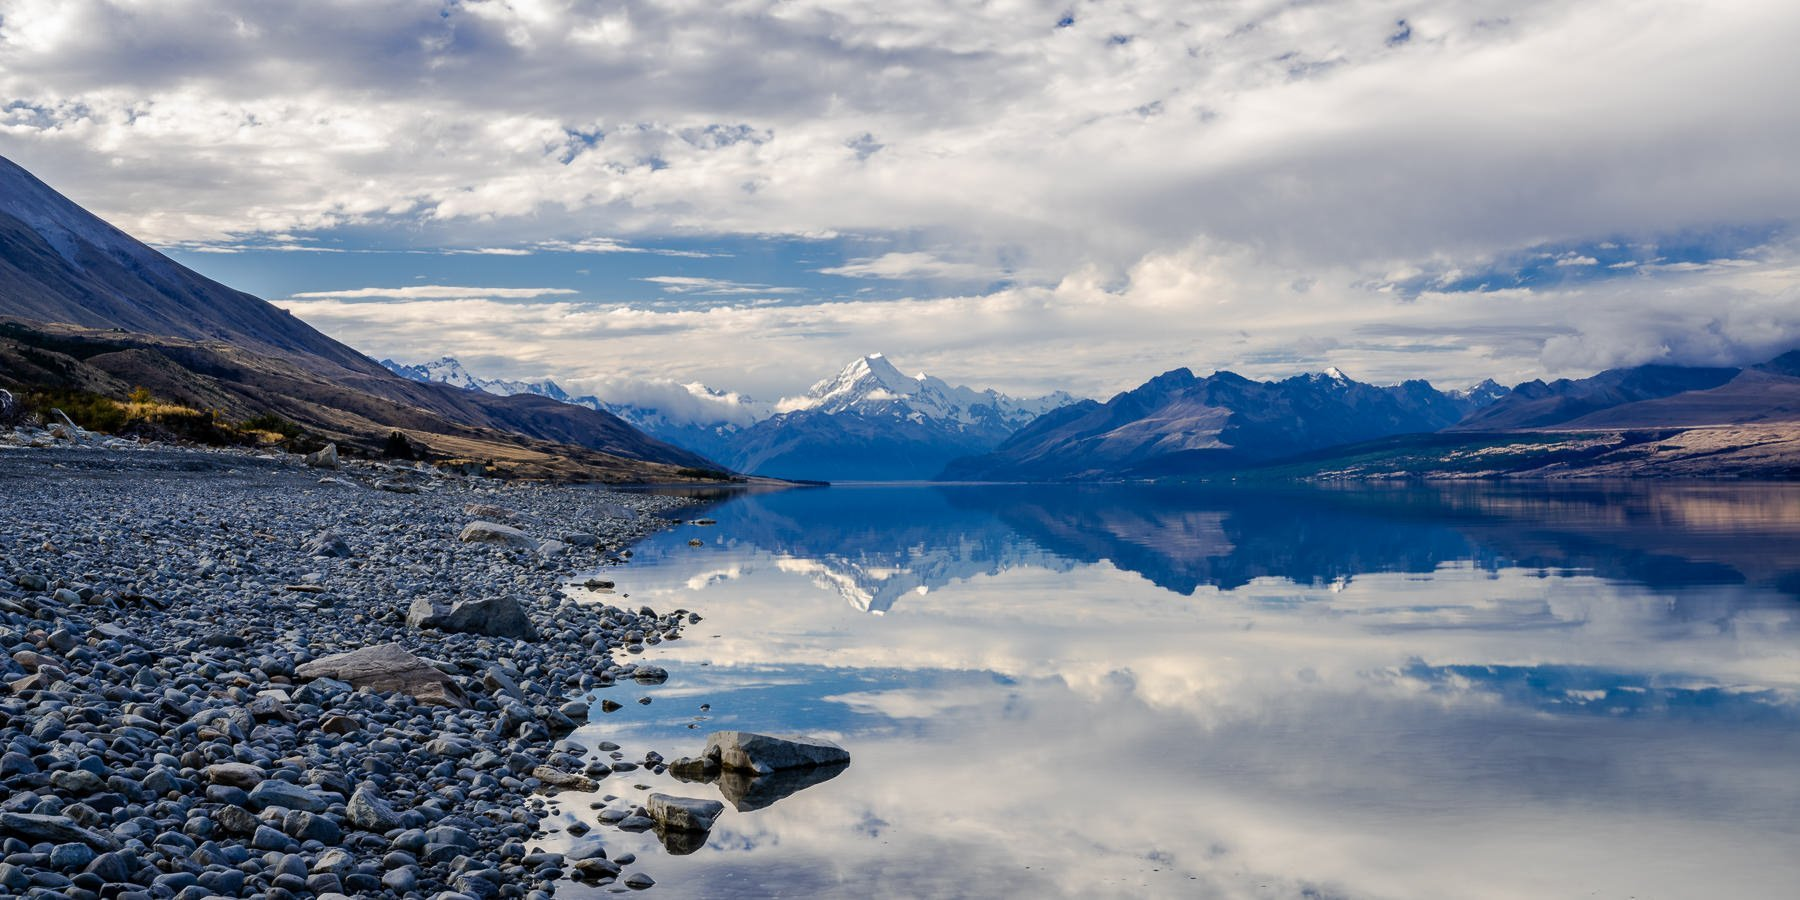 Mount Cook and its reflection in Lake Pukaki on a calm still evening in New Zealand